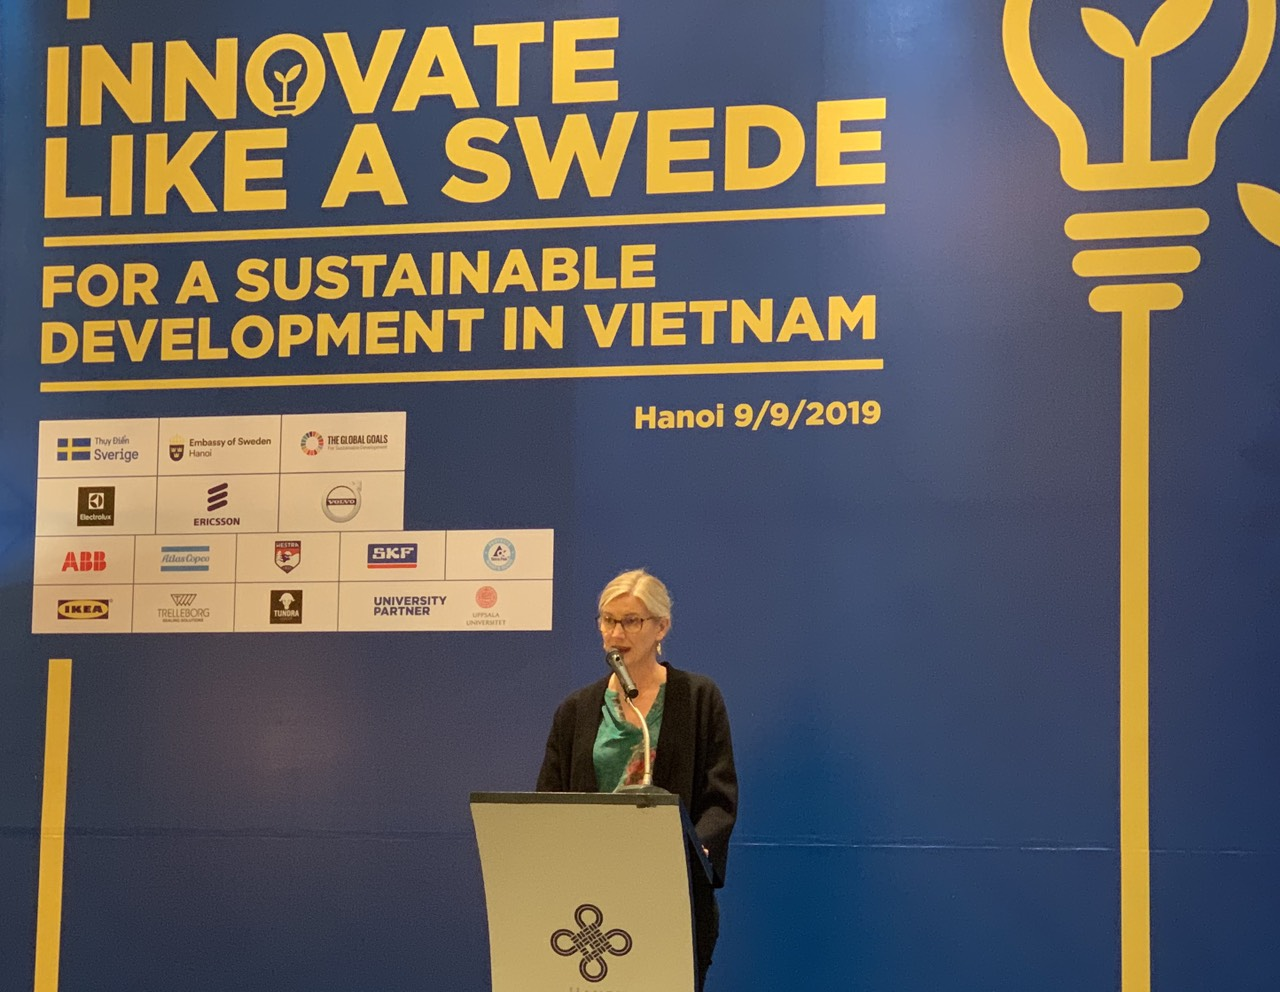 Innovate like a Swede 2019 launched in Hanoi